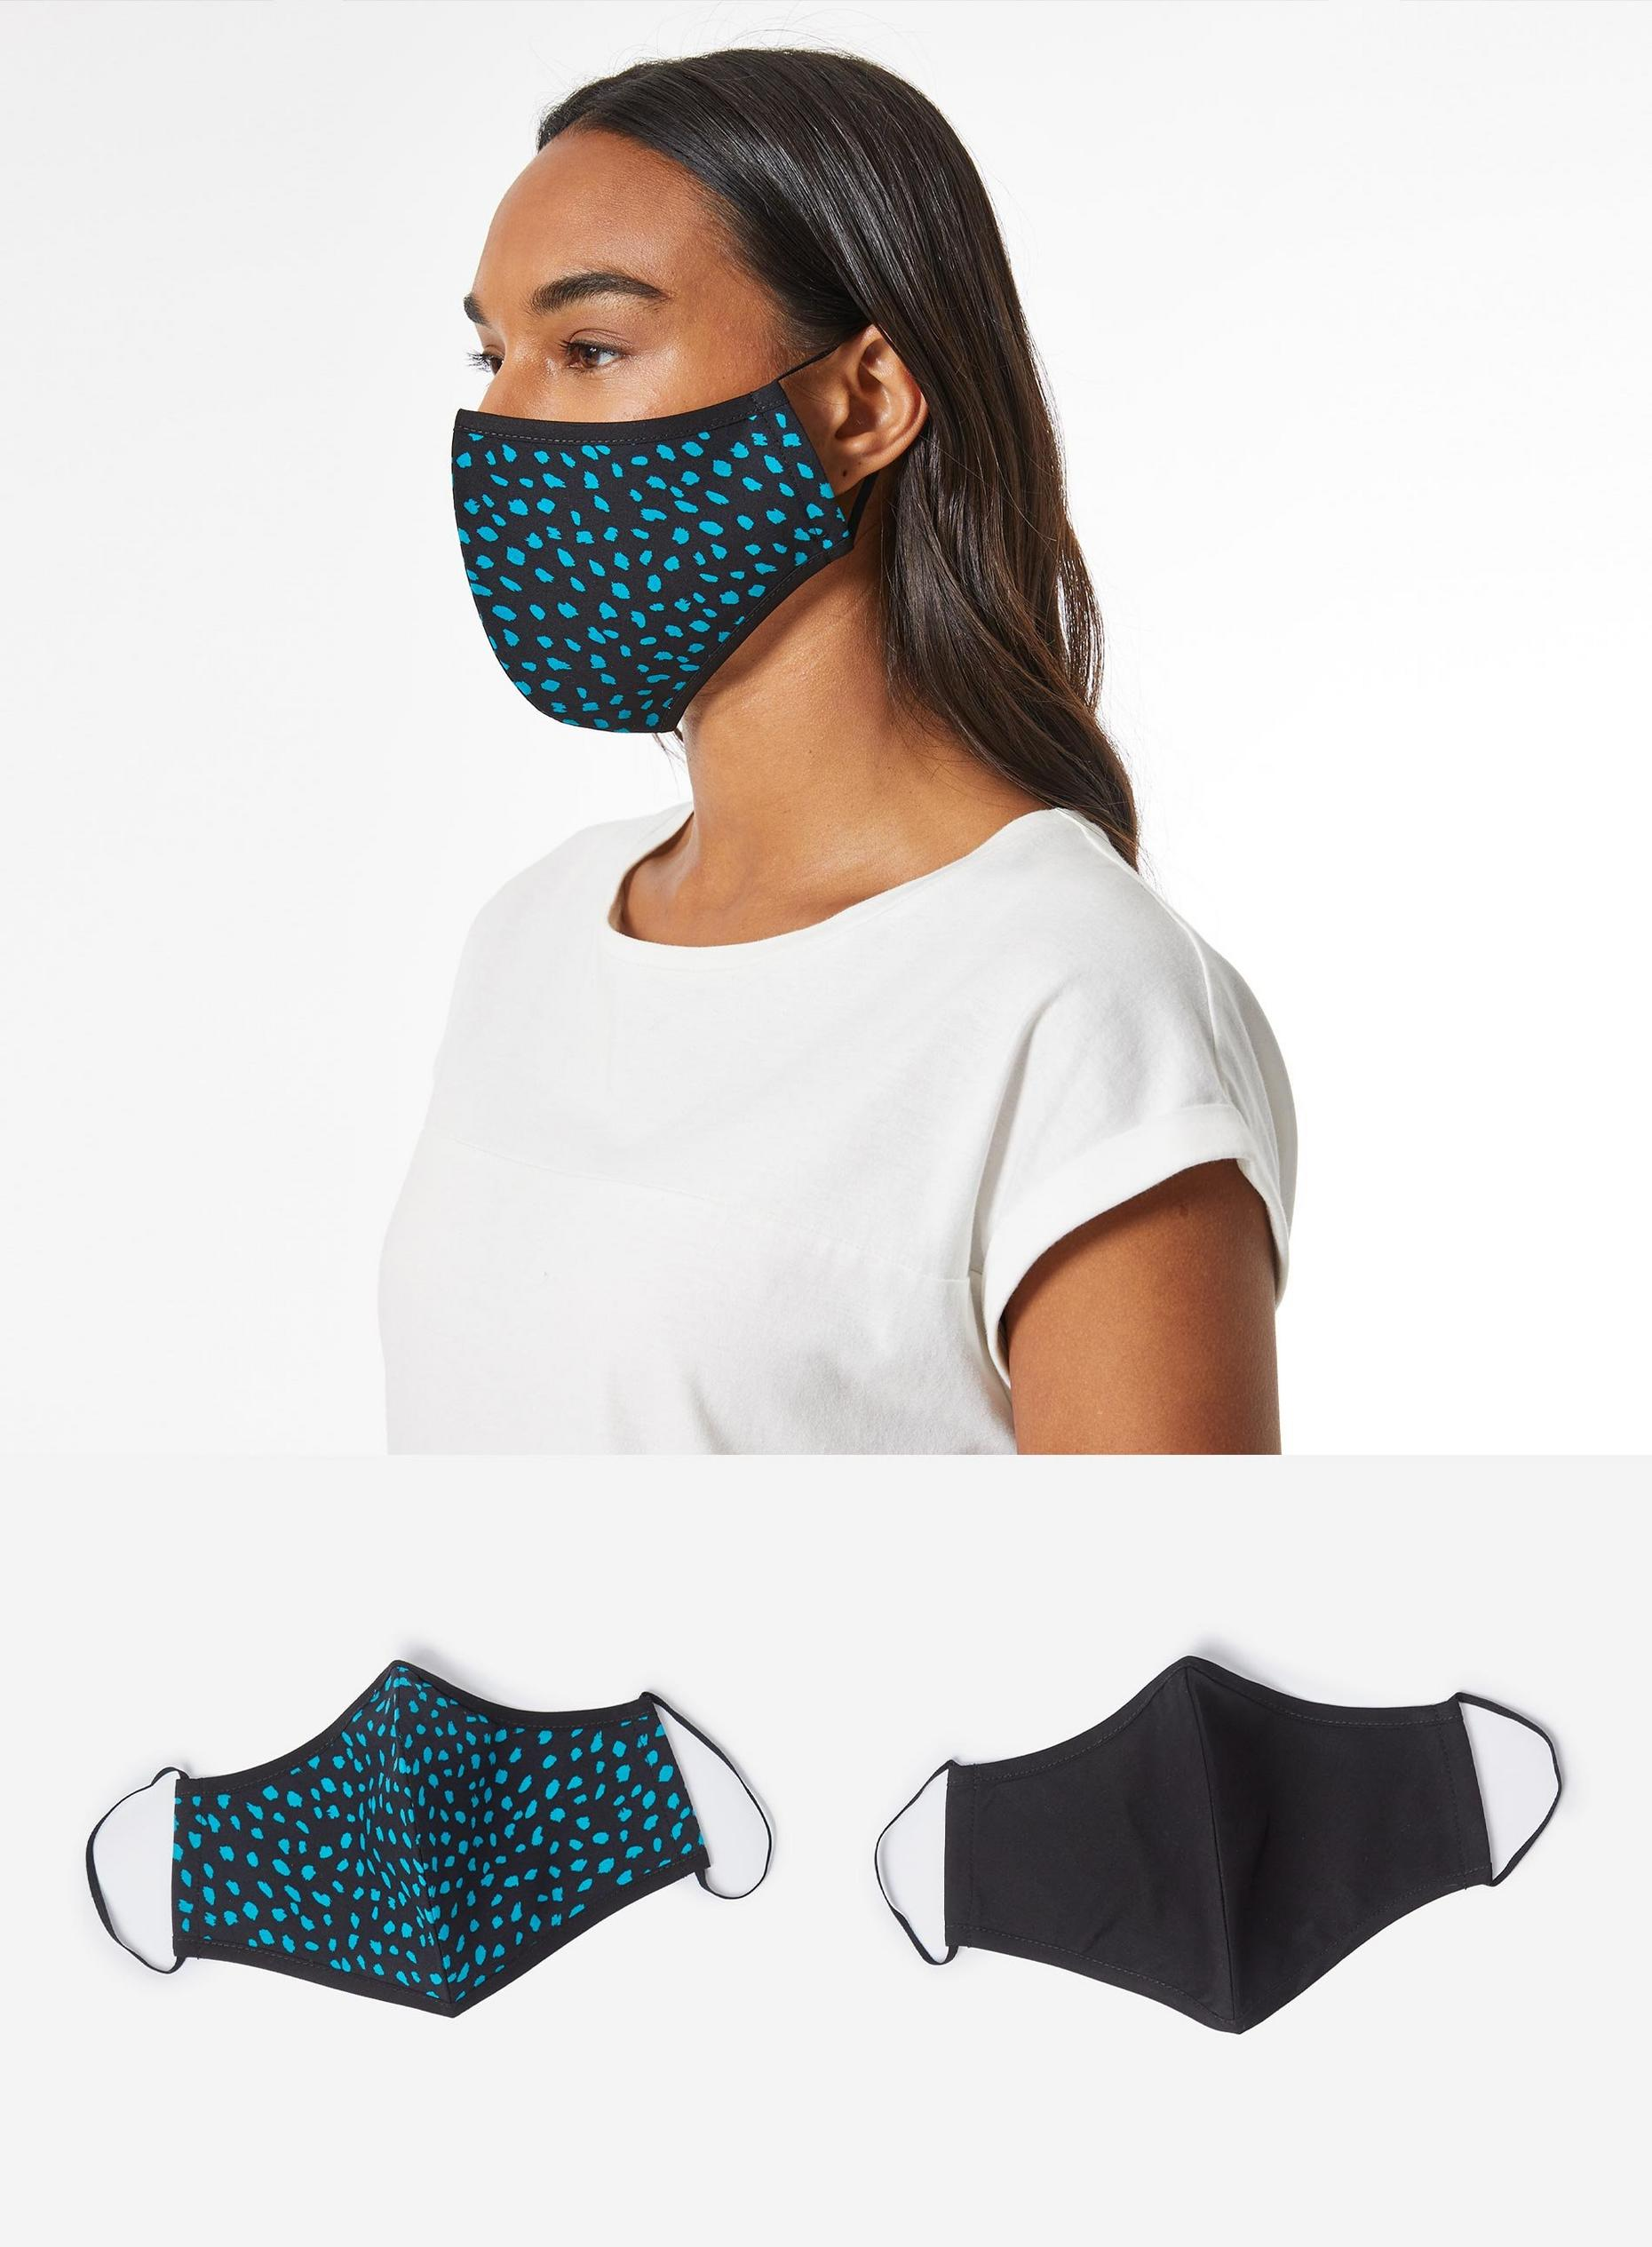 Green and Black 2 Pack Face Covering